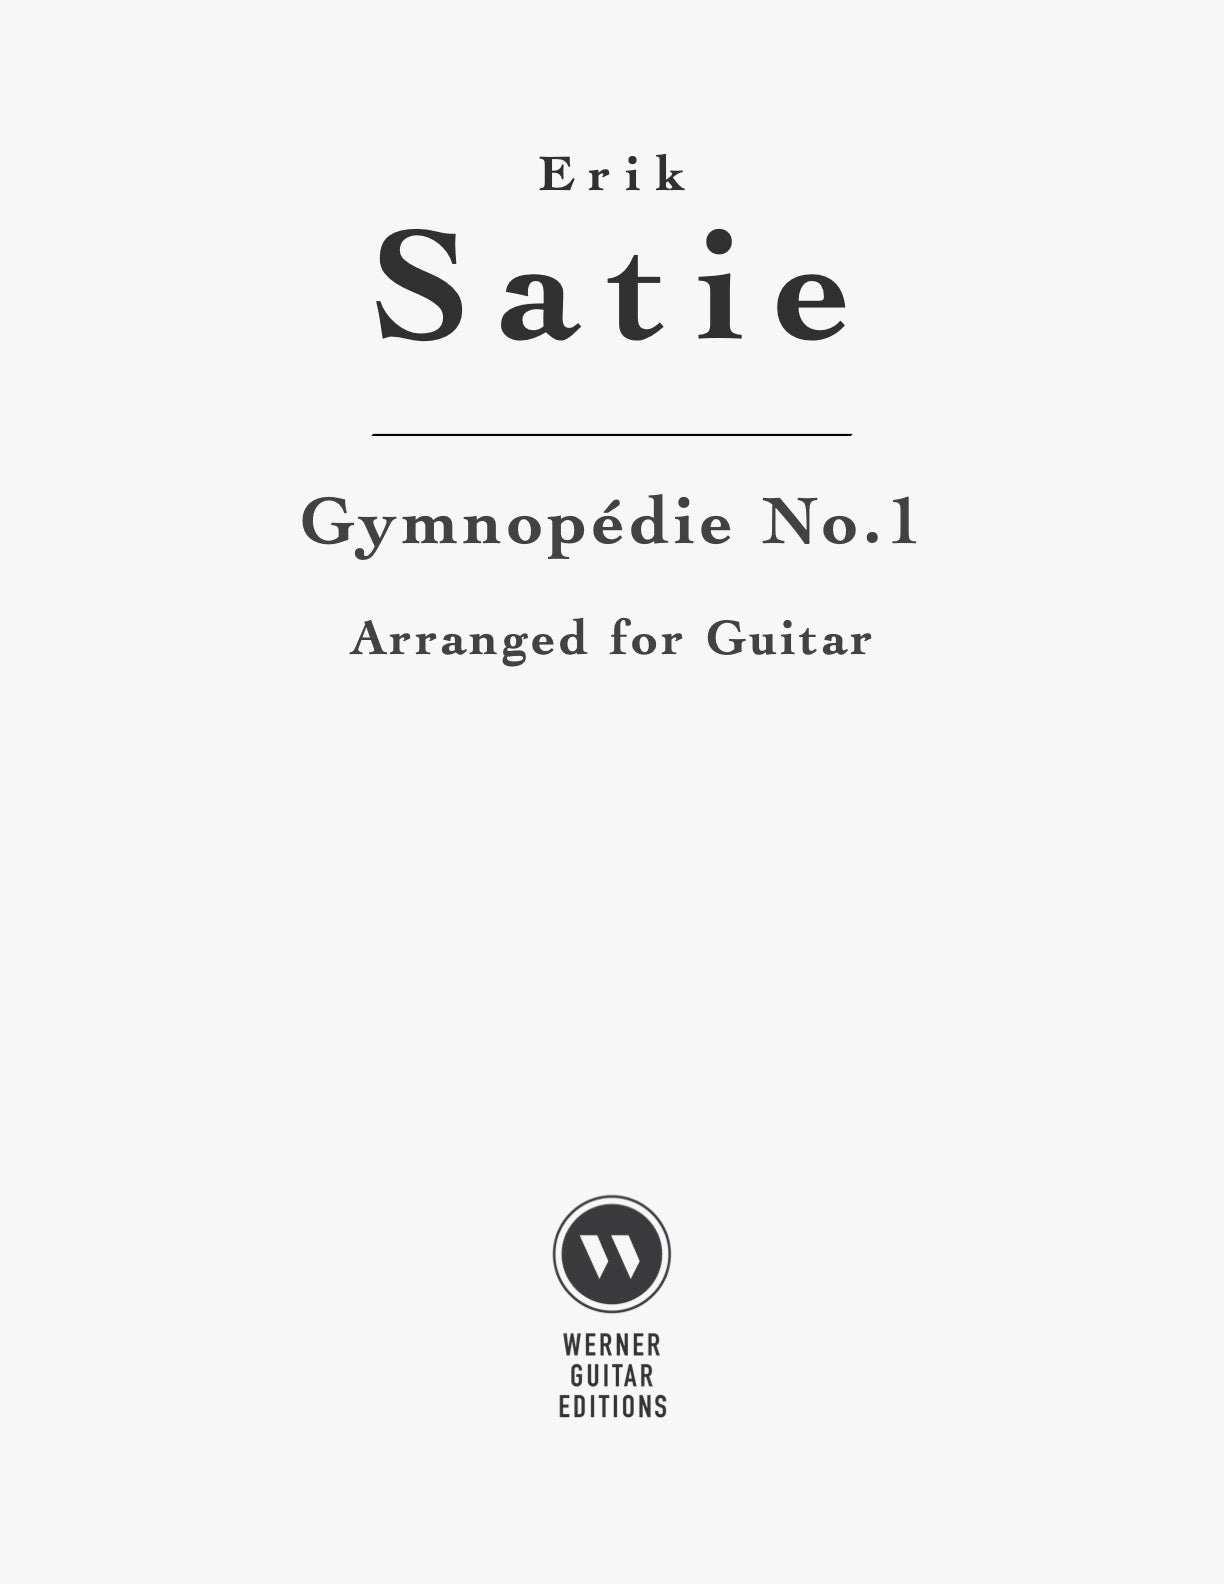 Gymnopédie No. 1 by Erik Satie for classical guitar. PDF sheet music or tab.